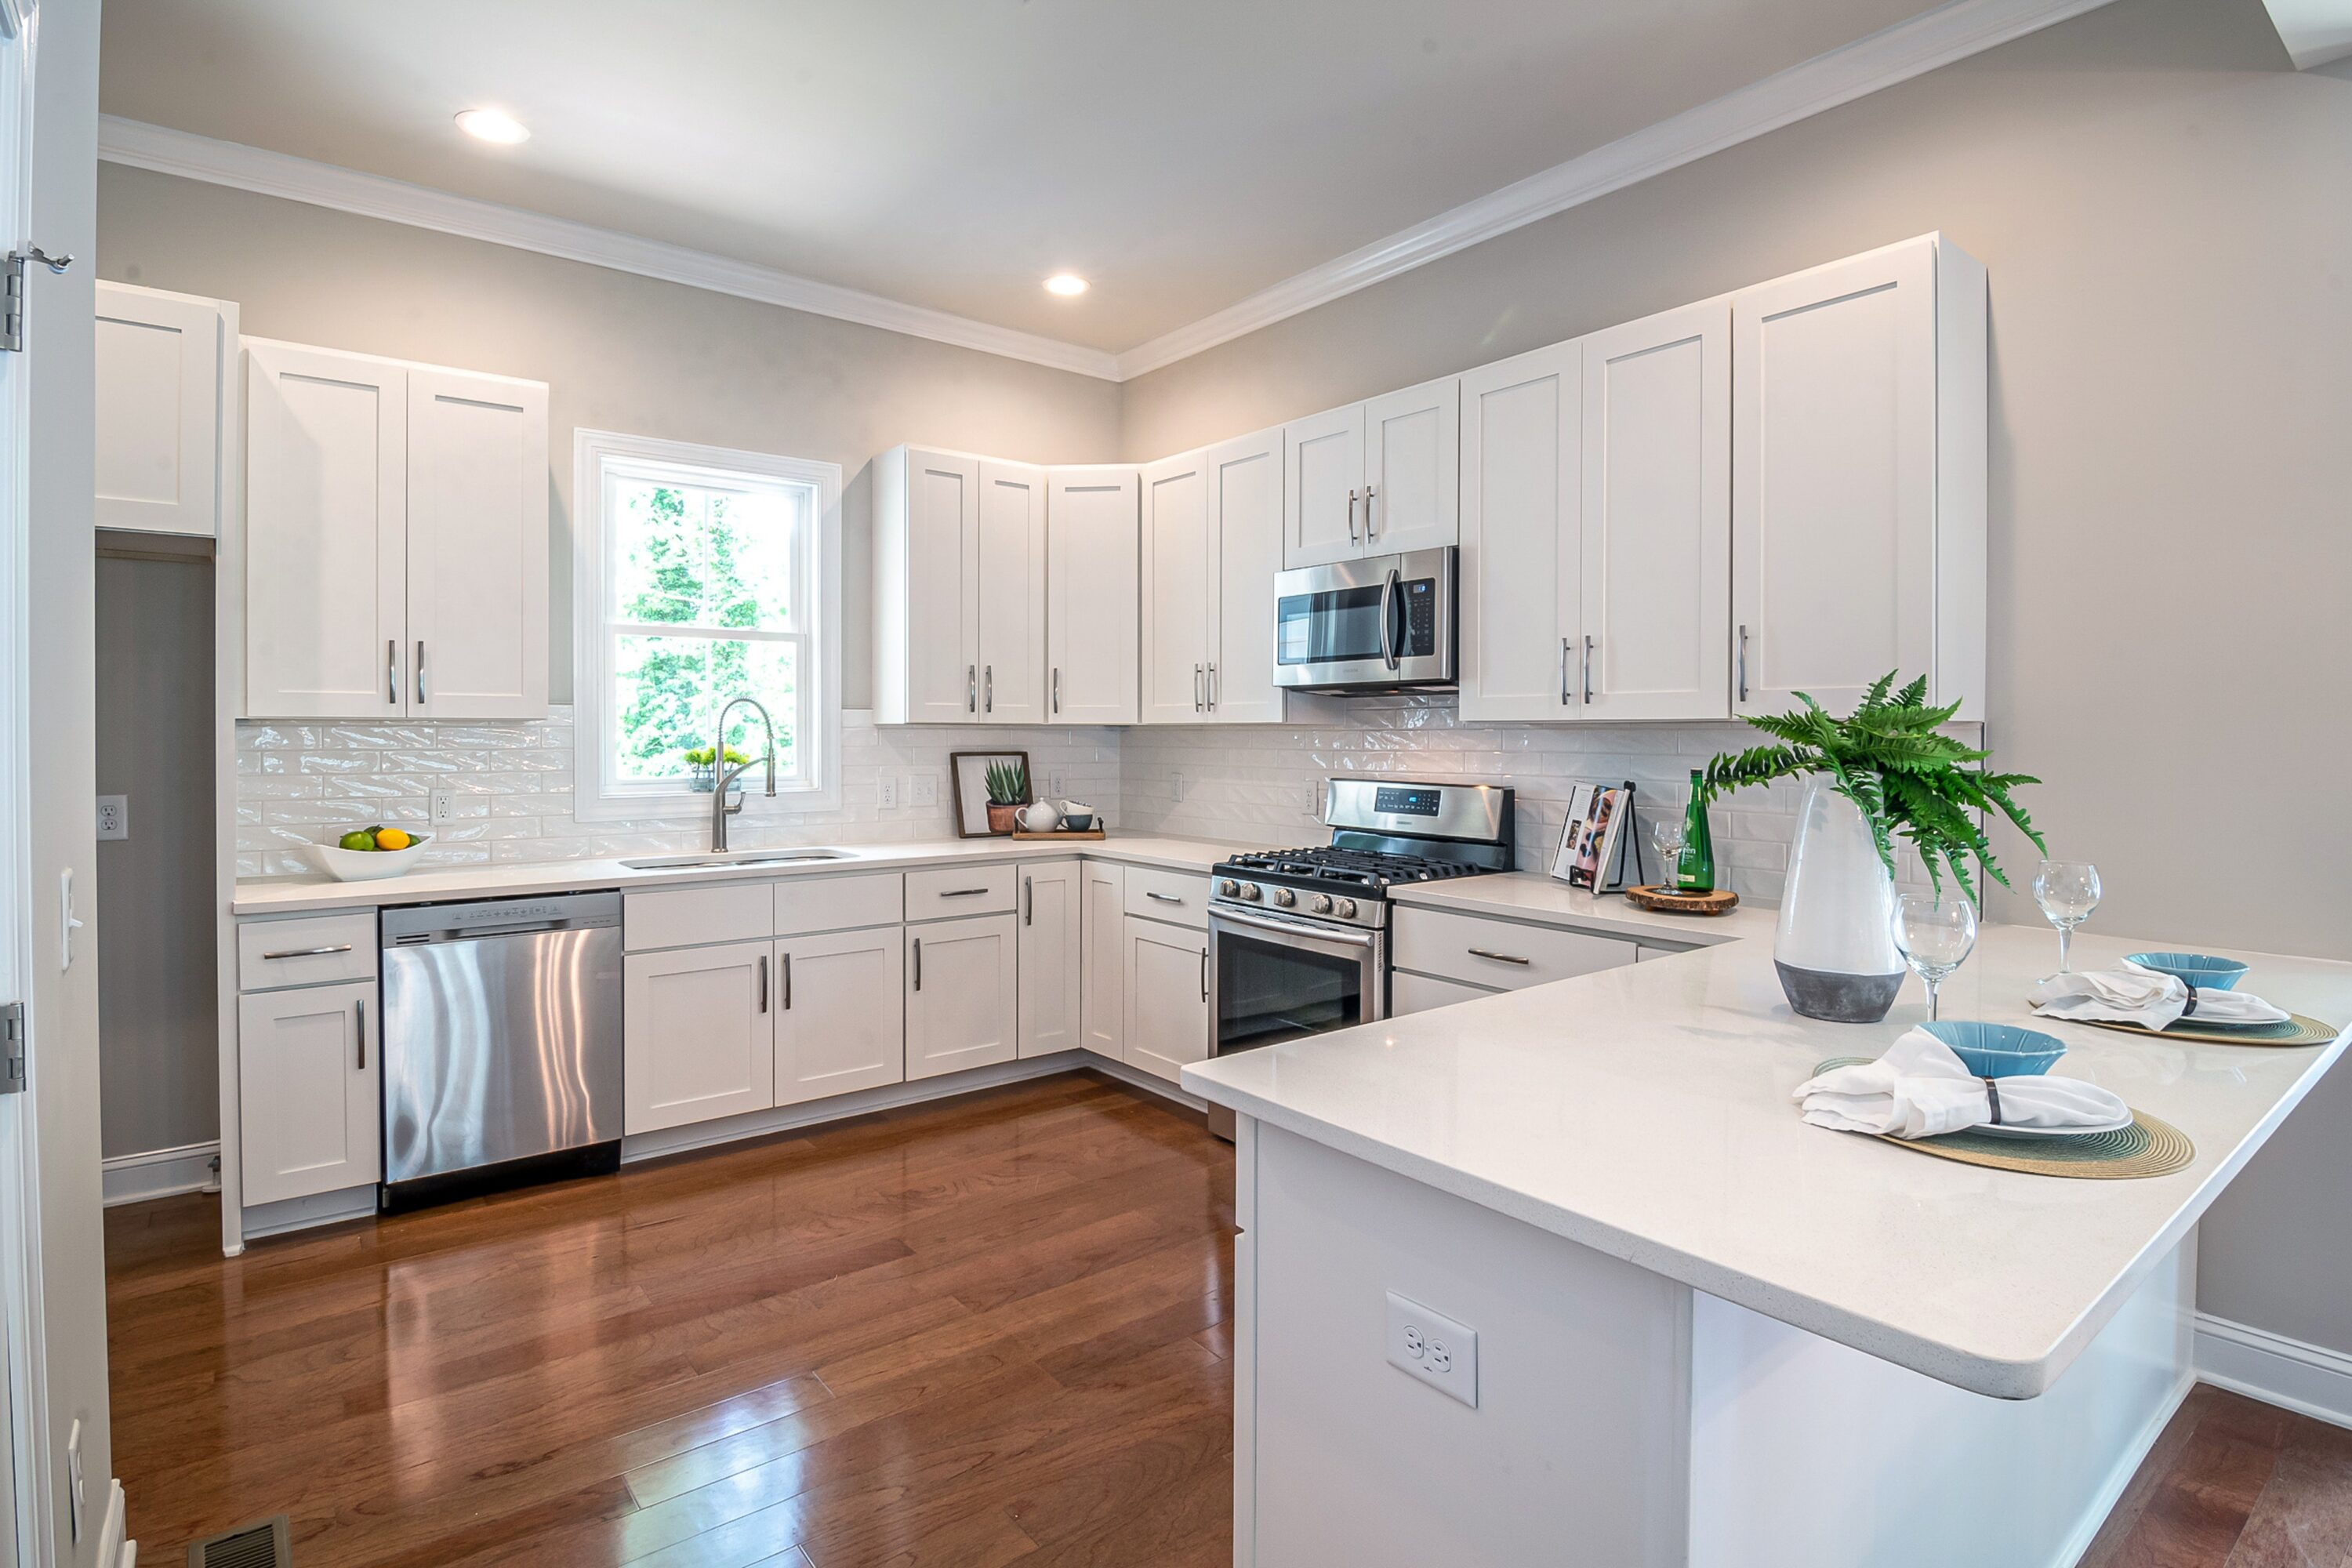 A beautiful new kitchen with white cabinets